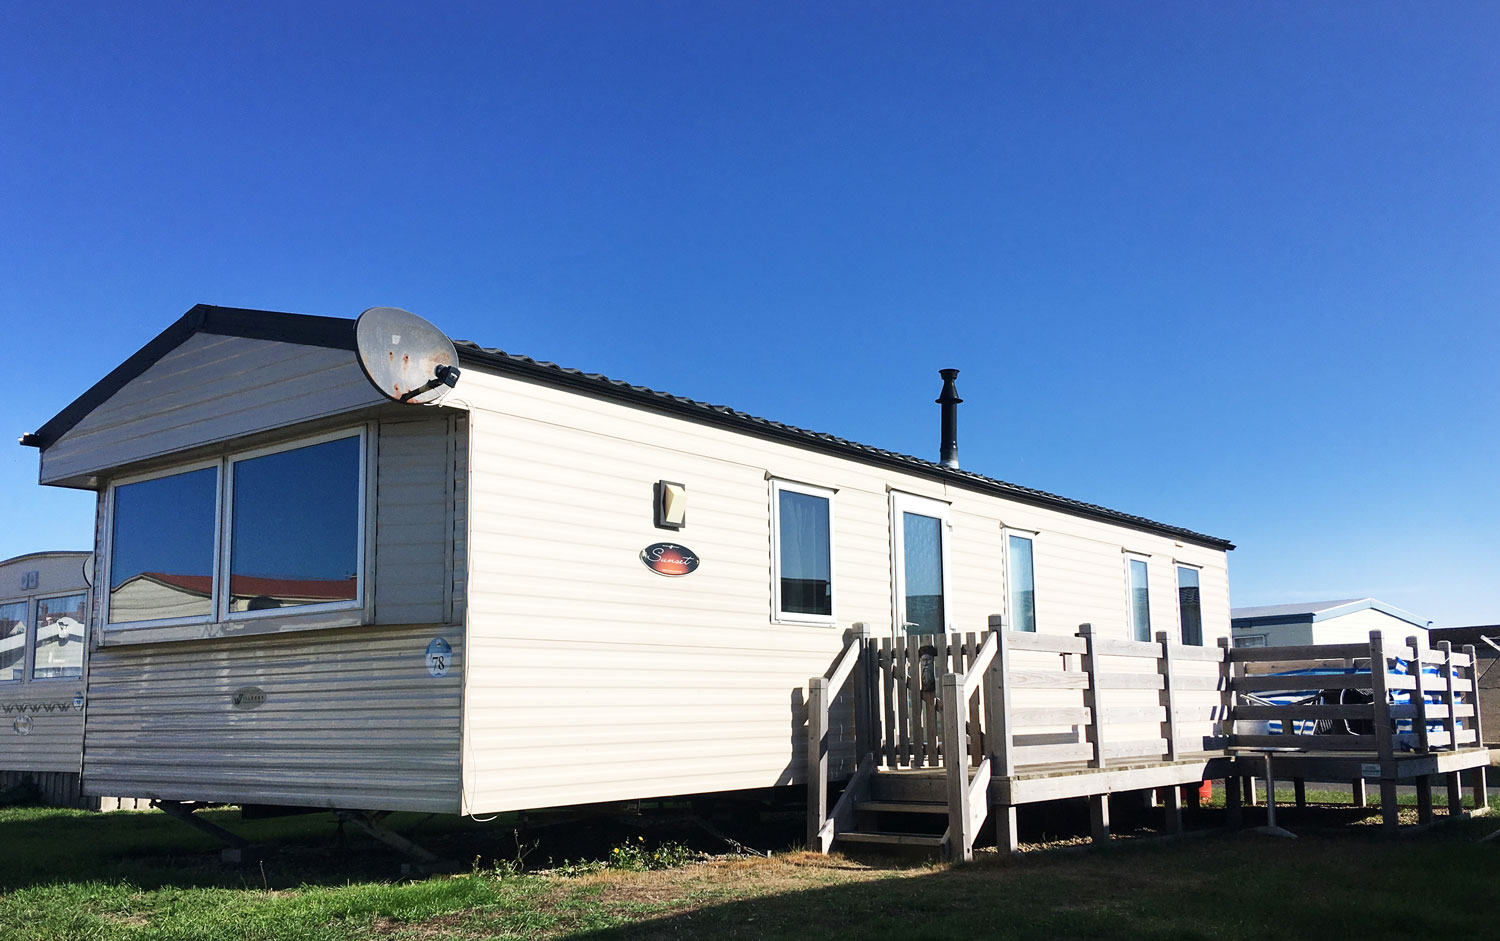 2013 WIllerby Sunset for sale at North Denes Park, Suffolk